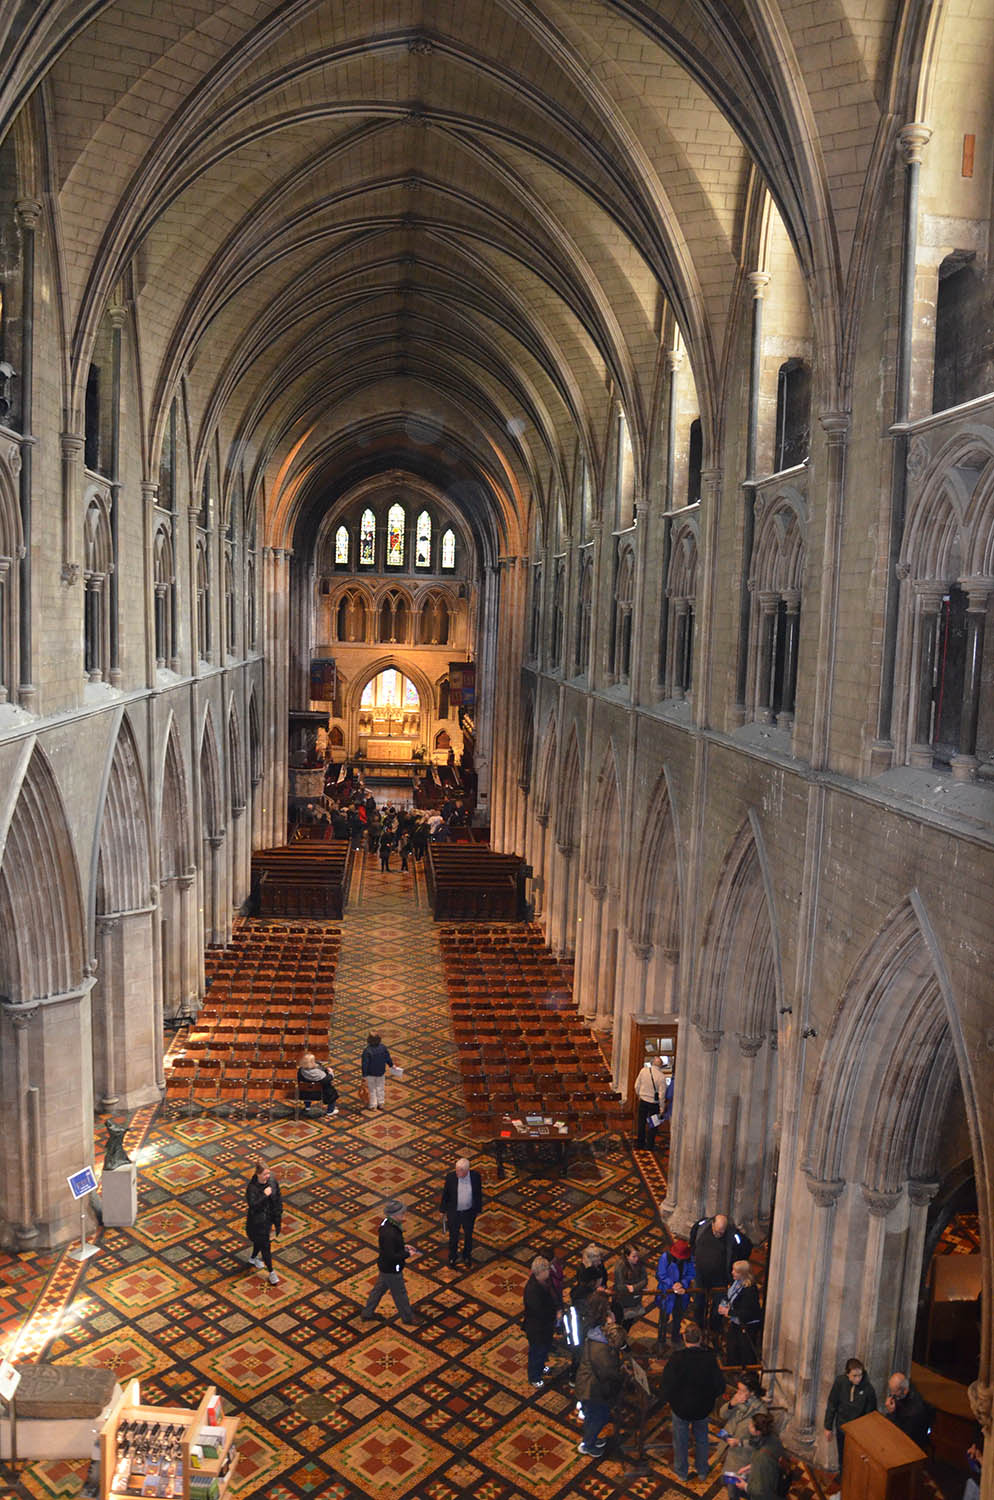 St. Patrick's Cathedral, Dublin - Roof Replacement